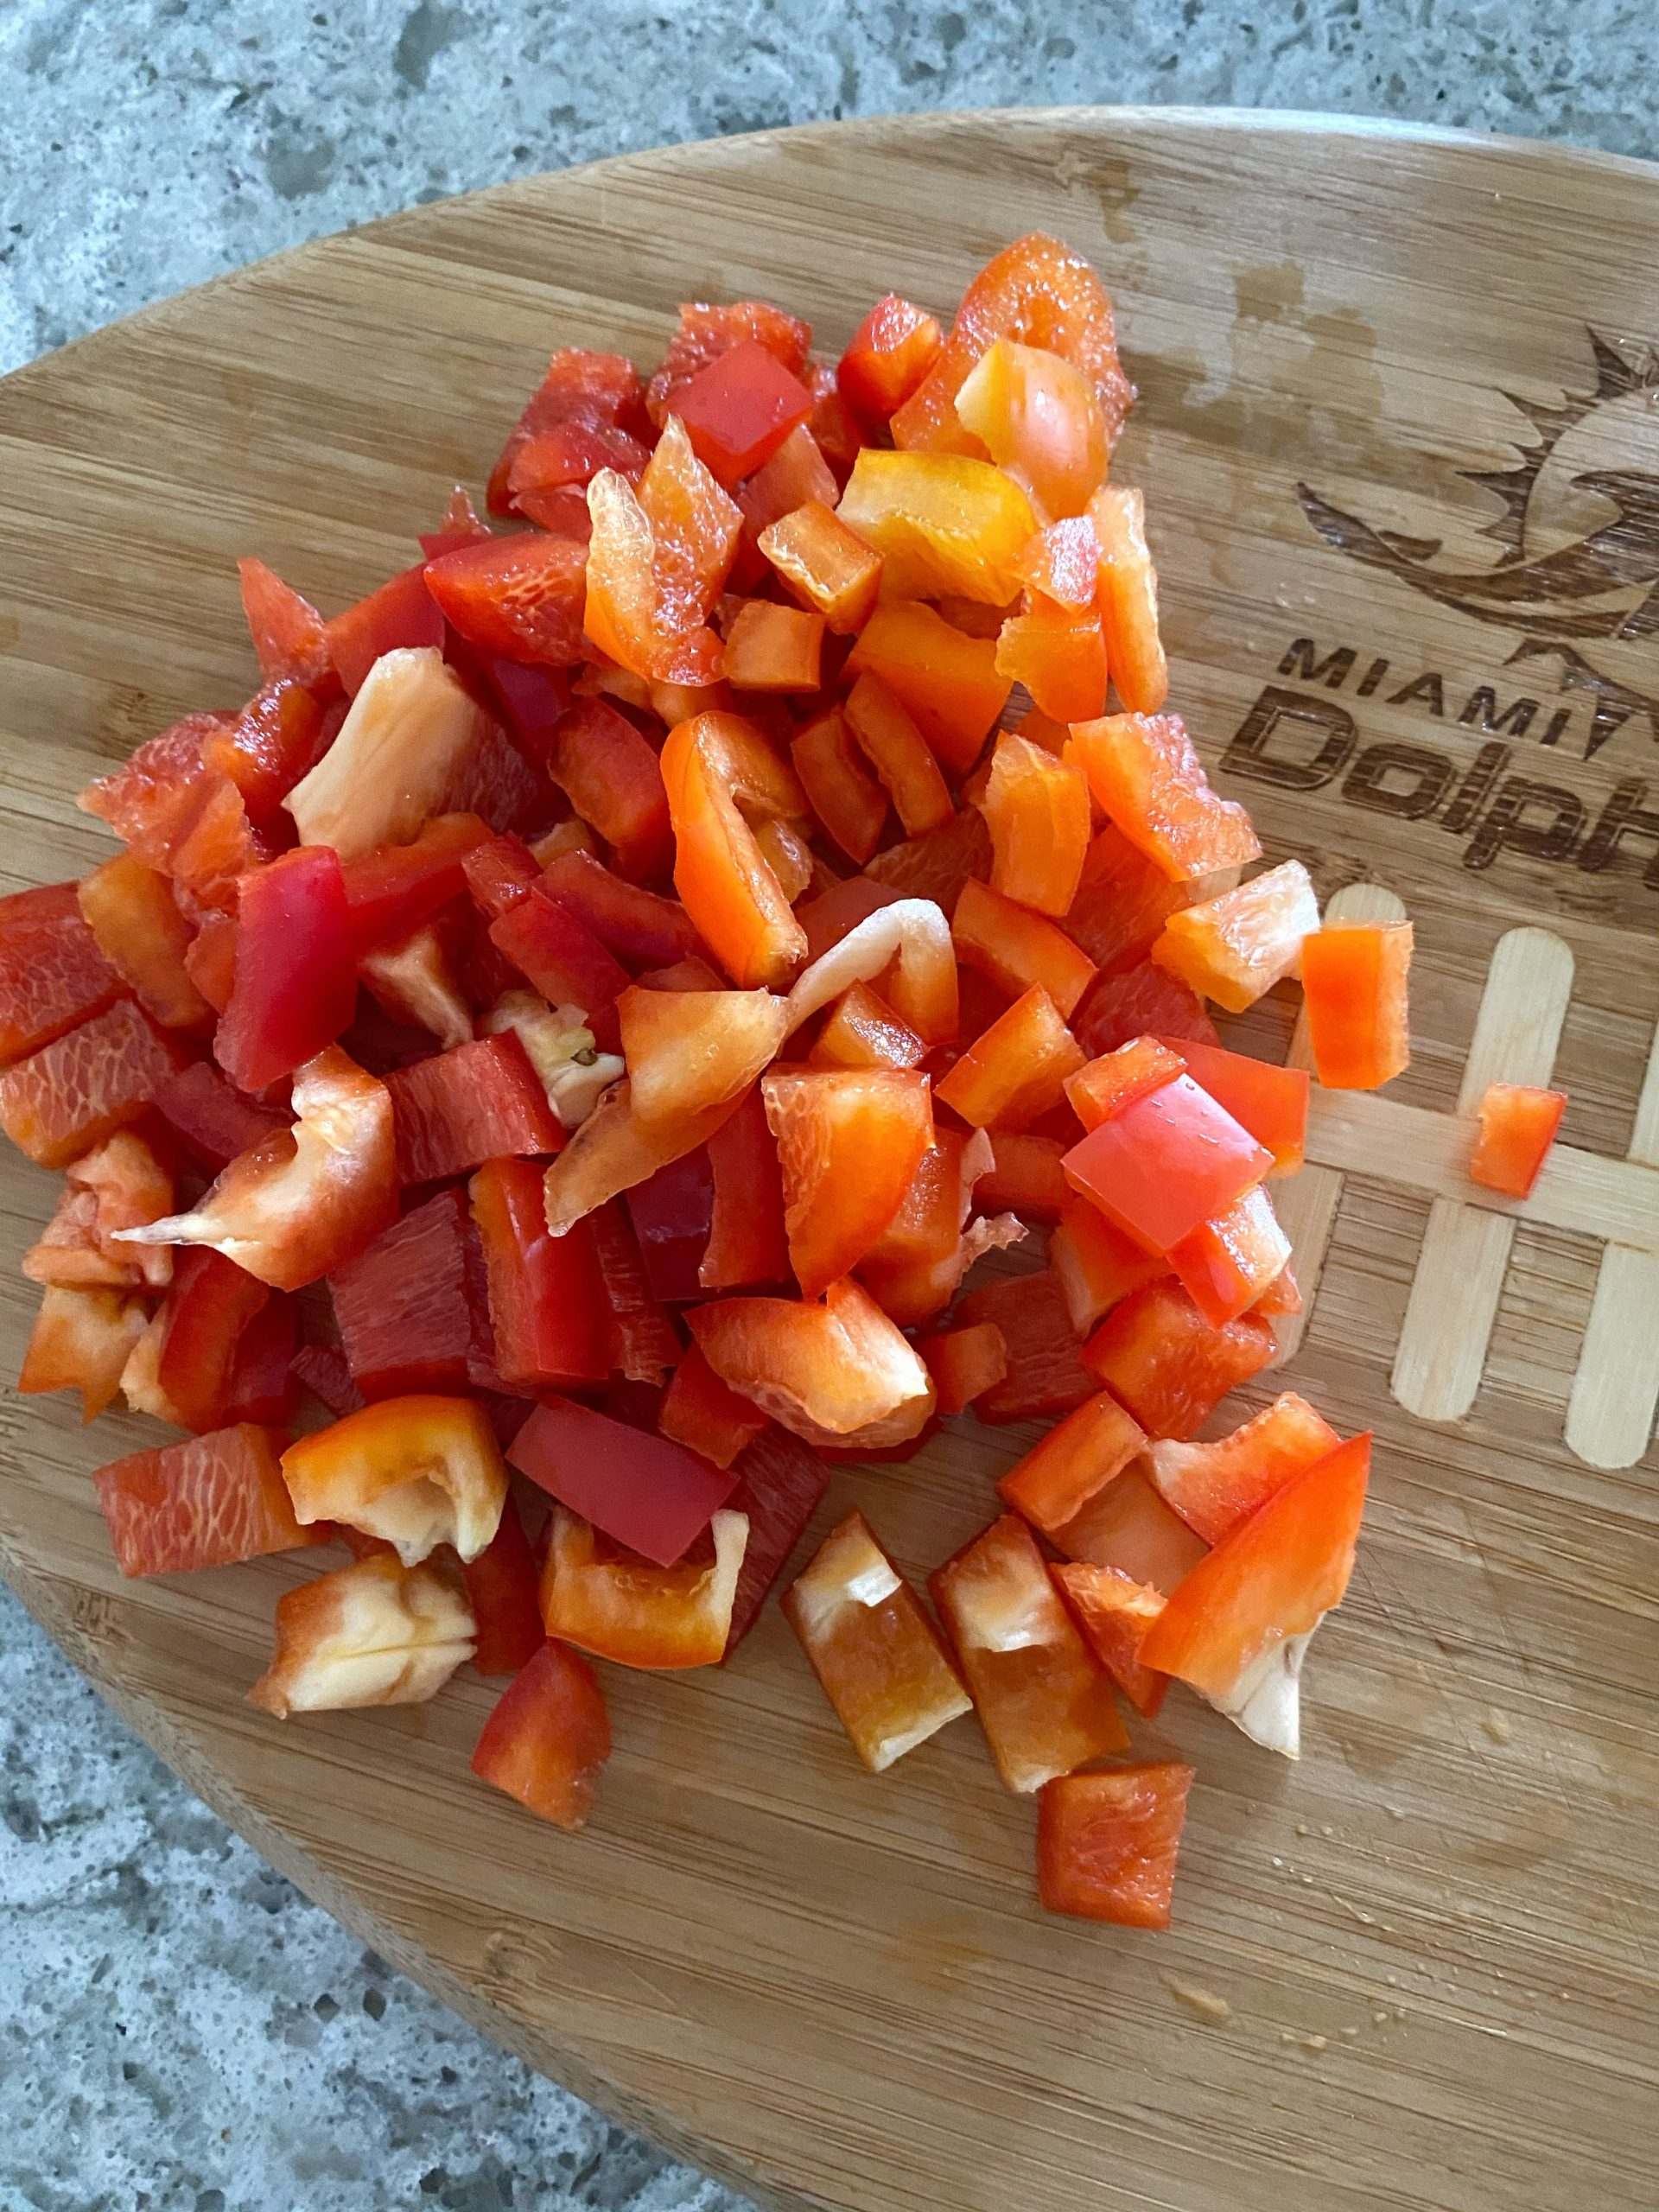 diced red bell pepper